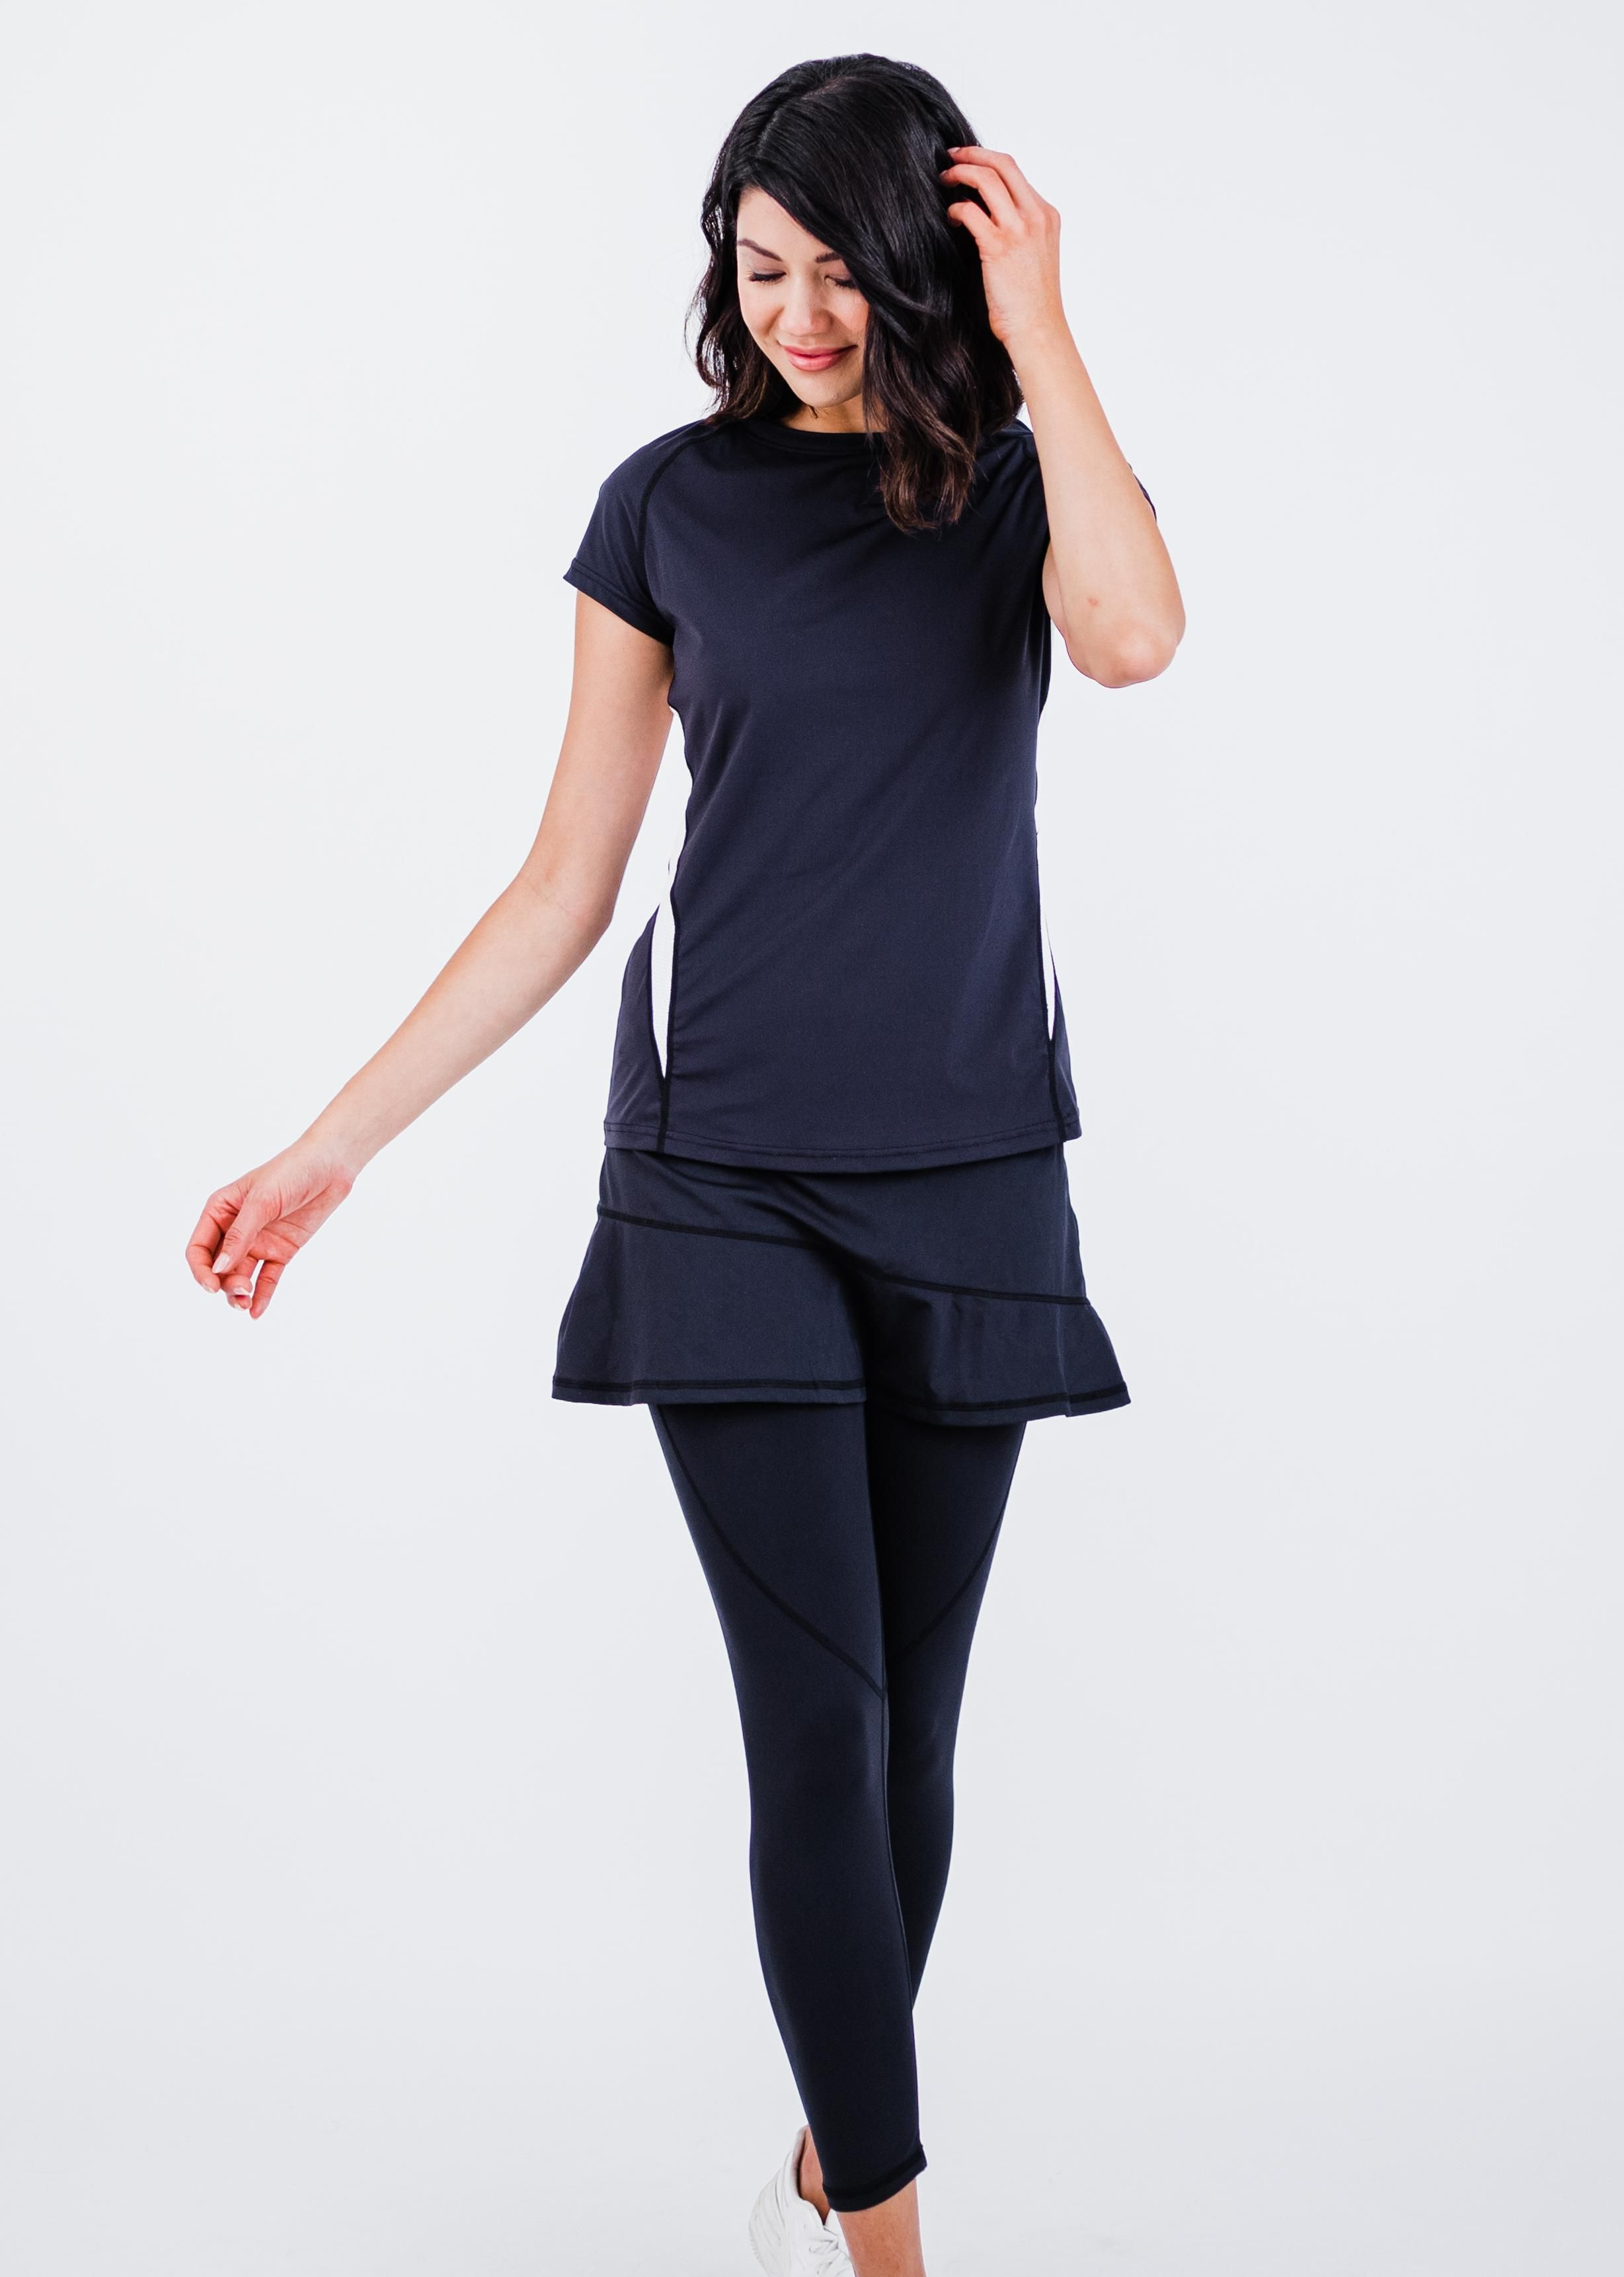 """Pro Cap Sleeve Performance Top With Mesh Panels With A-line Lycra® Short Sport Skirt With Attached 27"""" Leggings"""